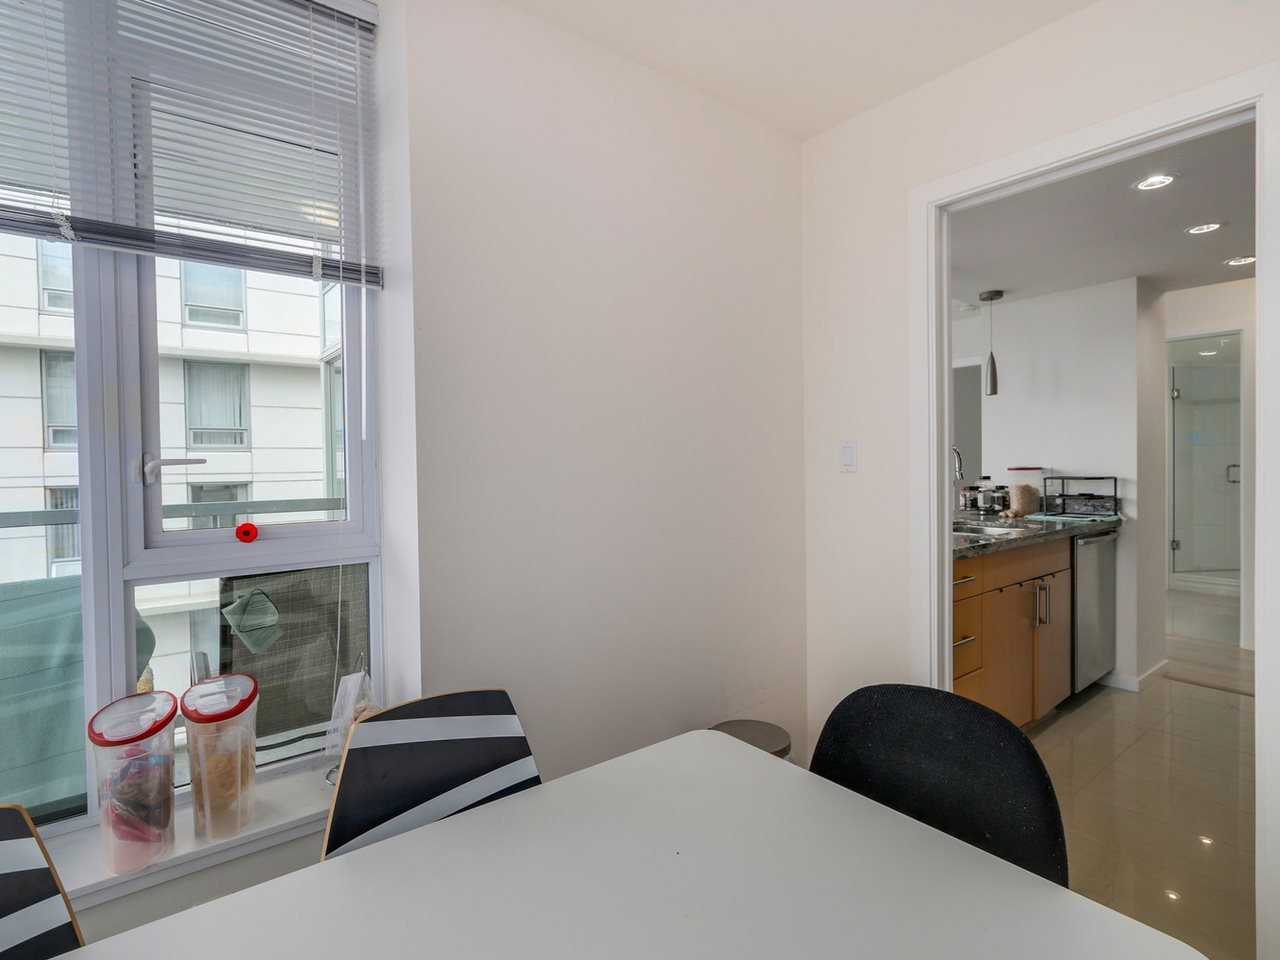 "Photo 11: 802 1887 CROWE Street in Vancouver: False Creek Condo for sale in ""PINNACLE ON FALSE CREEK"" (Vancouver West)  : MLS® # R2044450"